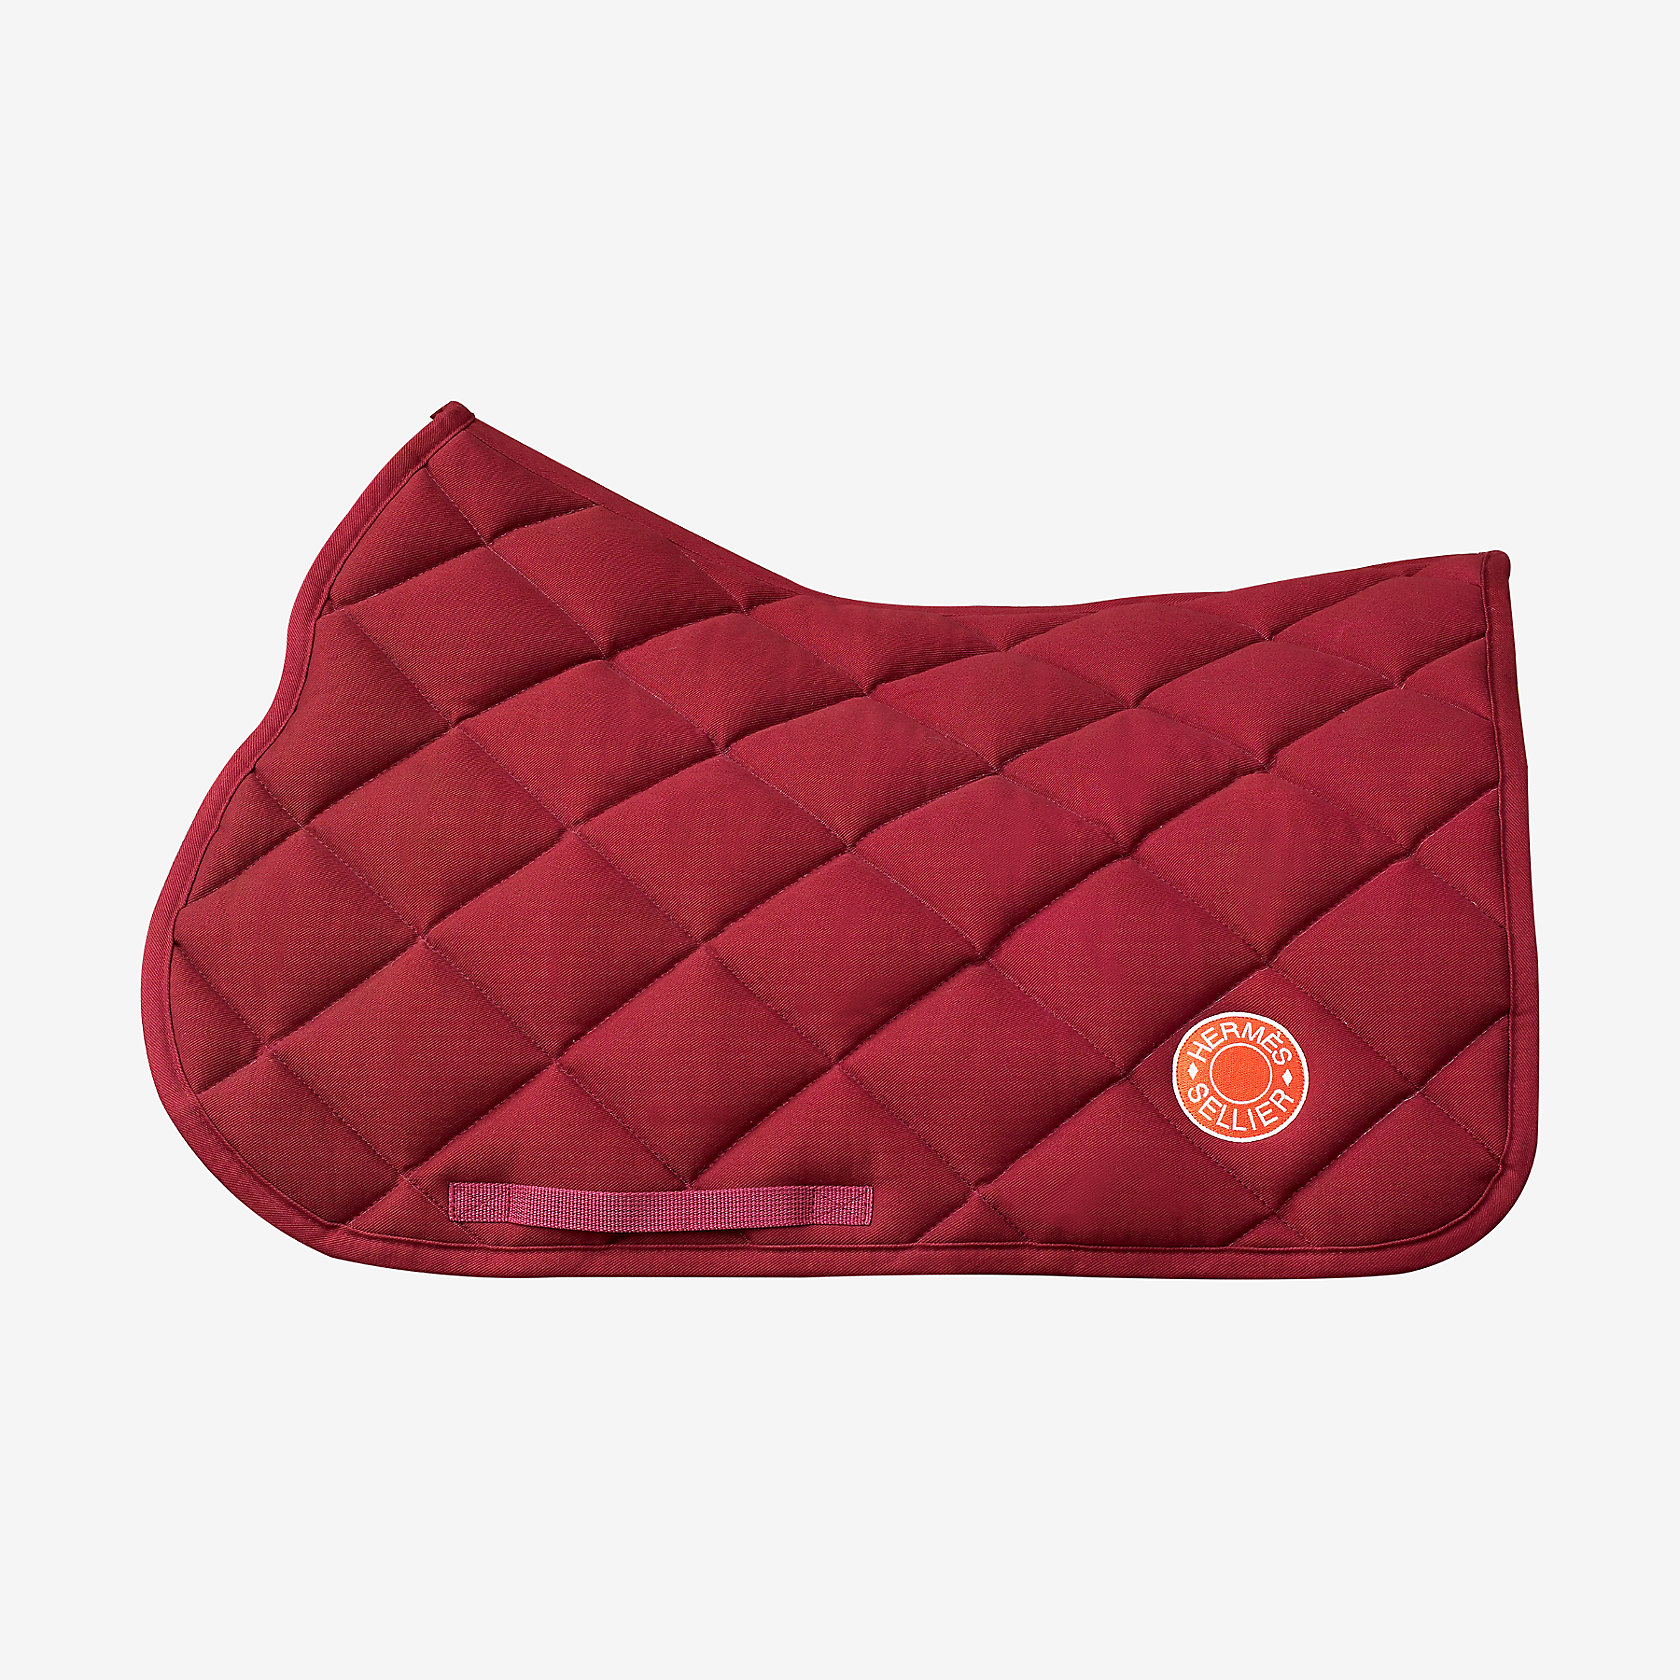 Oxford unisex saddle pad hermès